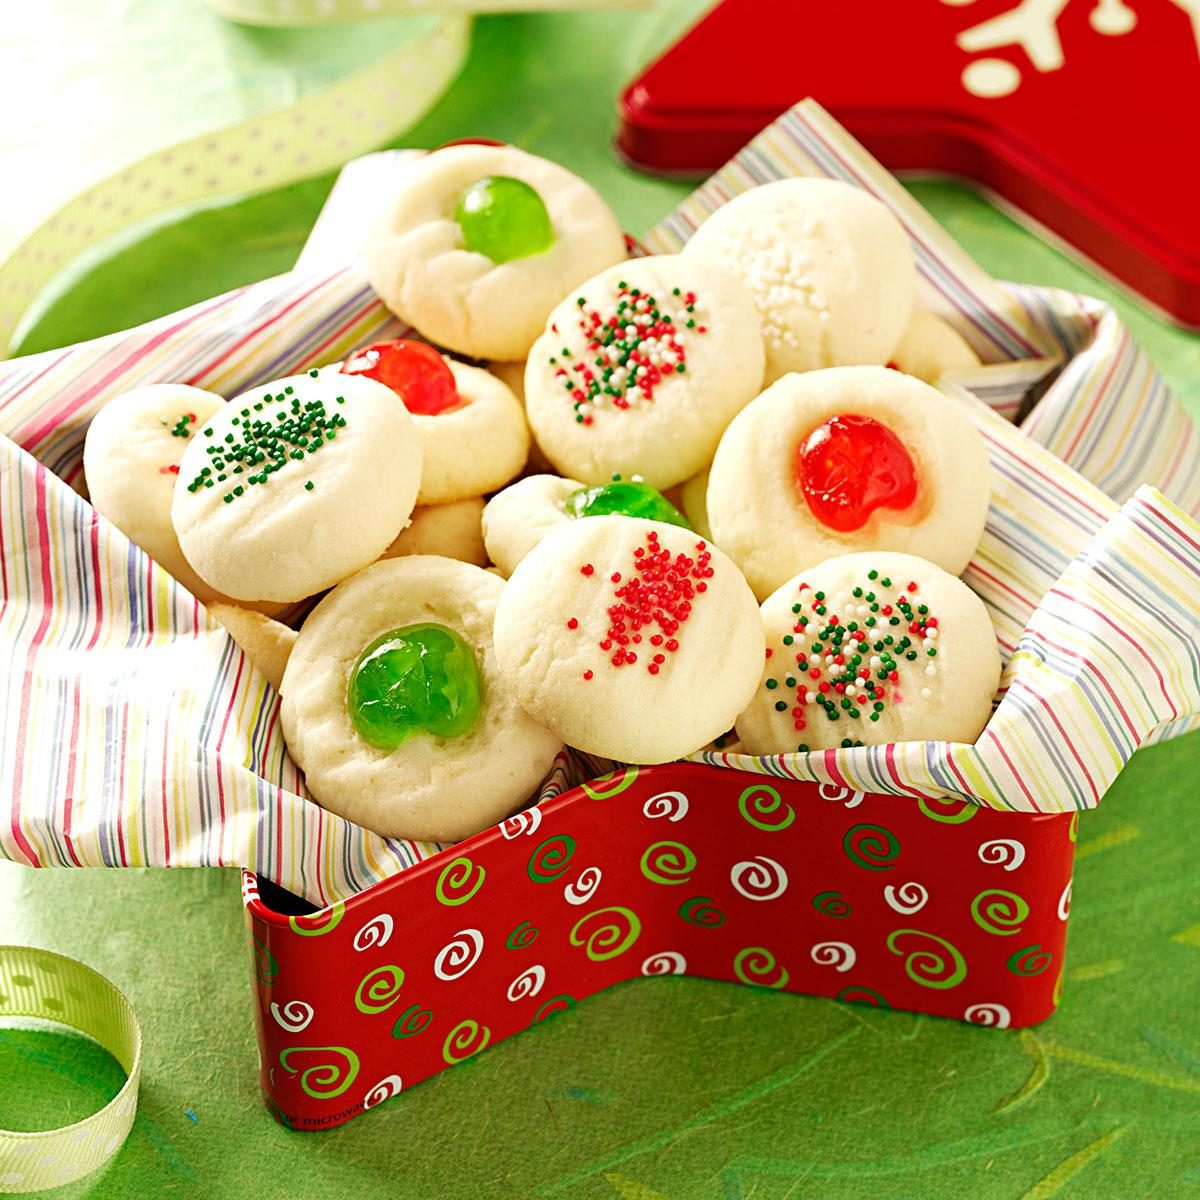 Whipped shortbread recipe taste of home for Easy holiday baking recipes for gifts